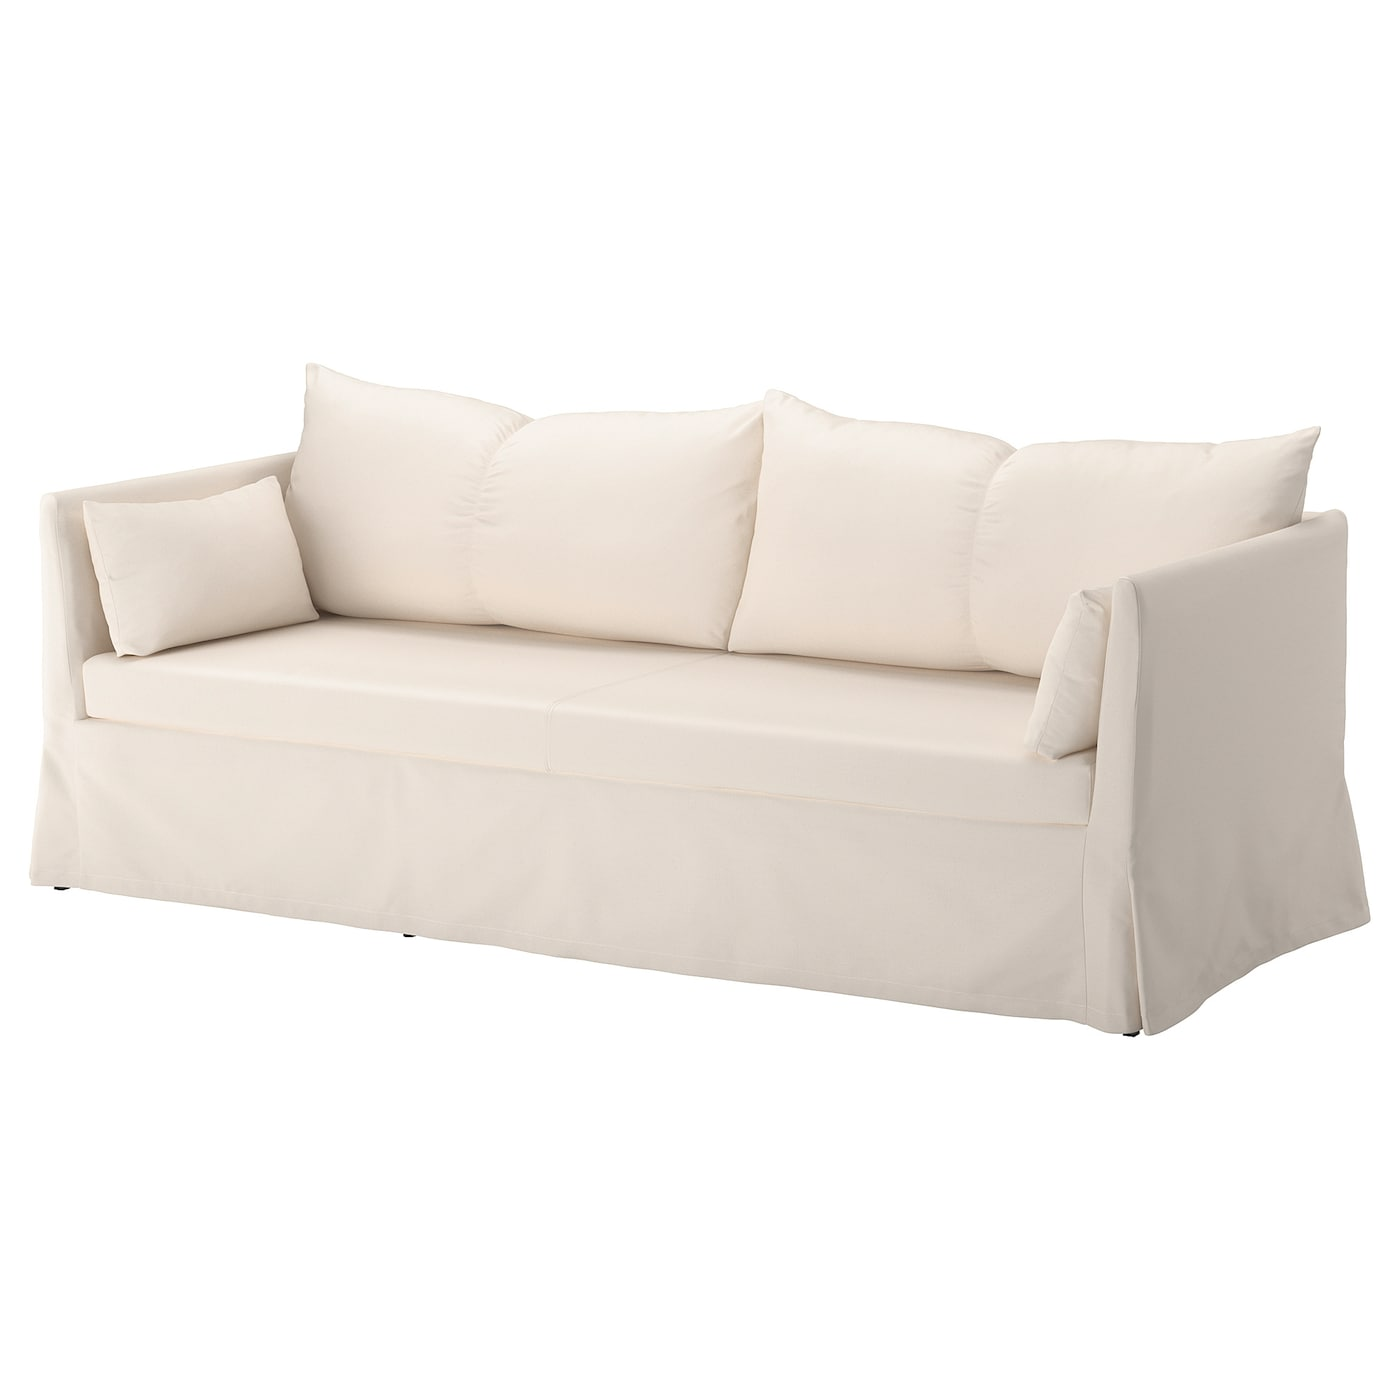 IKEA SANDBACKEN 3-seat sofa You sit comfortably thanks to the resilient foam and springy seat.